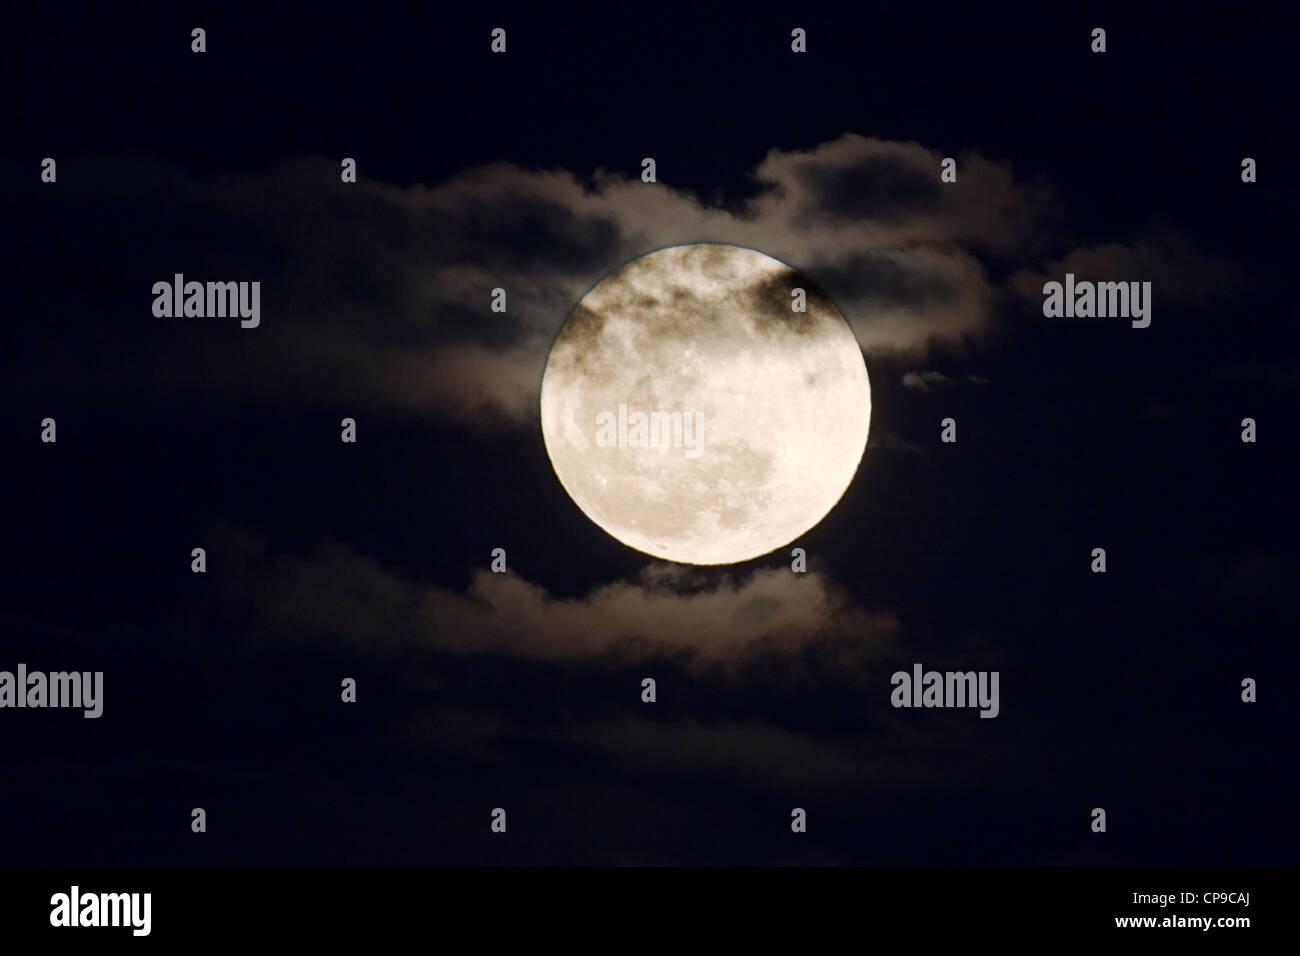 Perigree full moon, or supermoon, rises over Salida, Colorado, USA. Moon is closer to earth in orbit than normal. Stock Photo